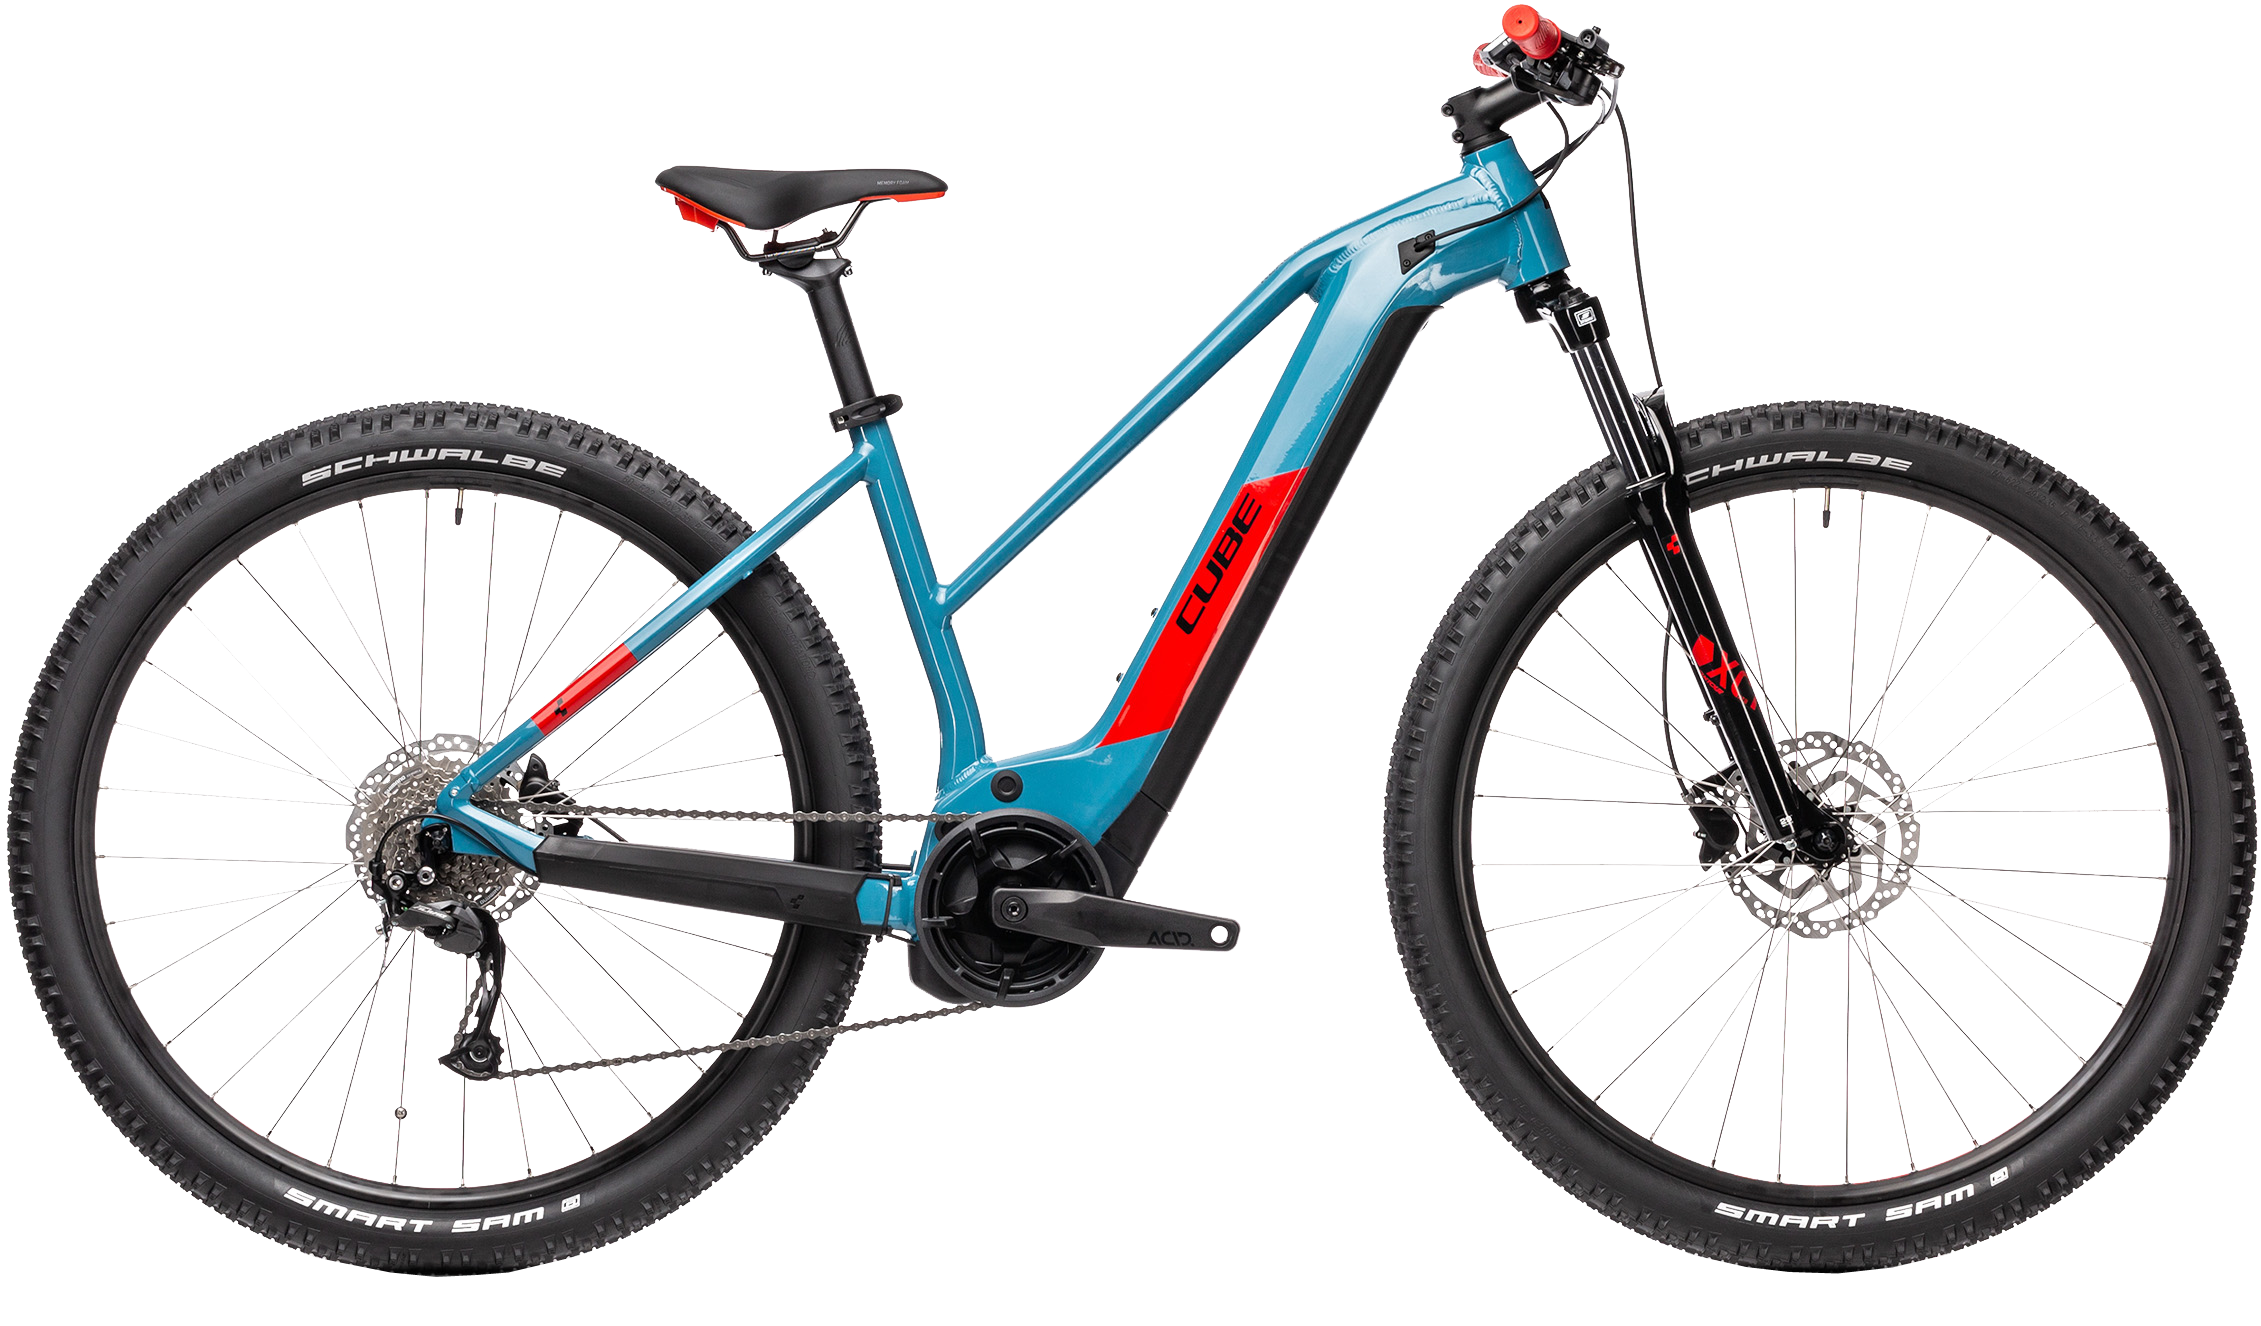 https://w8w5m3f8.stackpathcdn.com/20320/vtt-electrique-cube-reaction-hybrid-performance-400-500-625wh-cadre-mixte.jpg